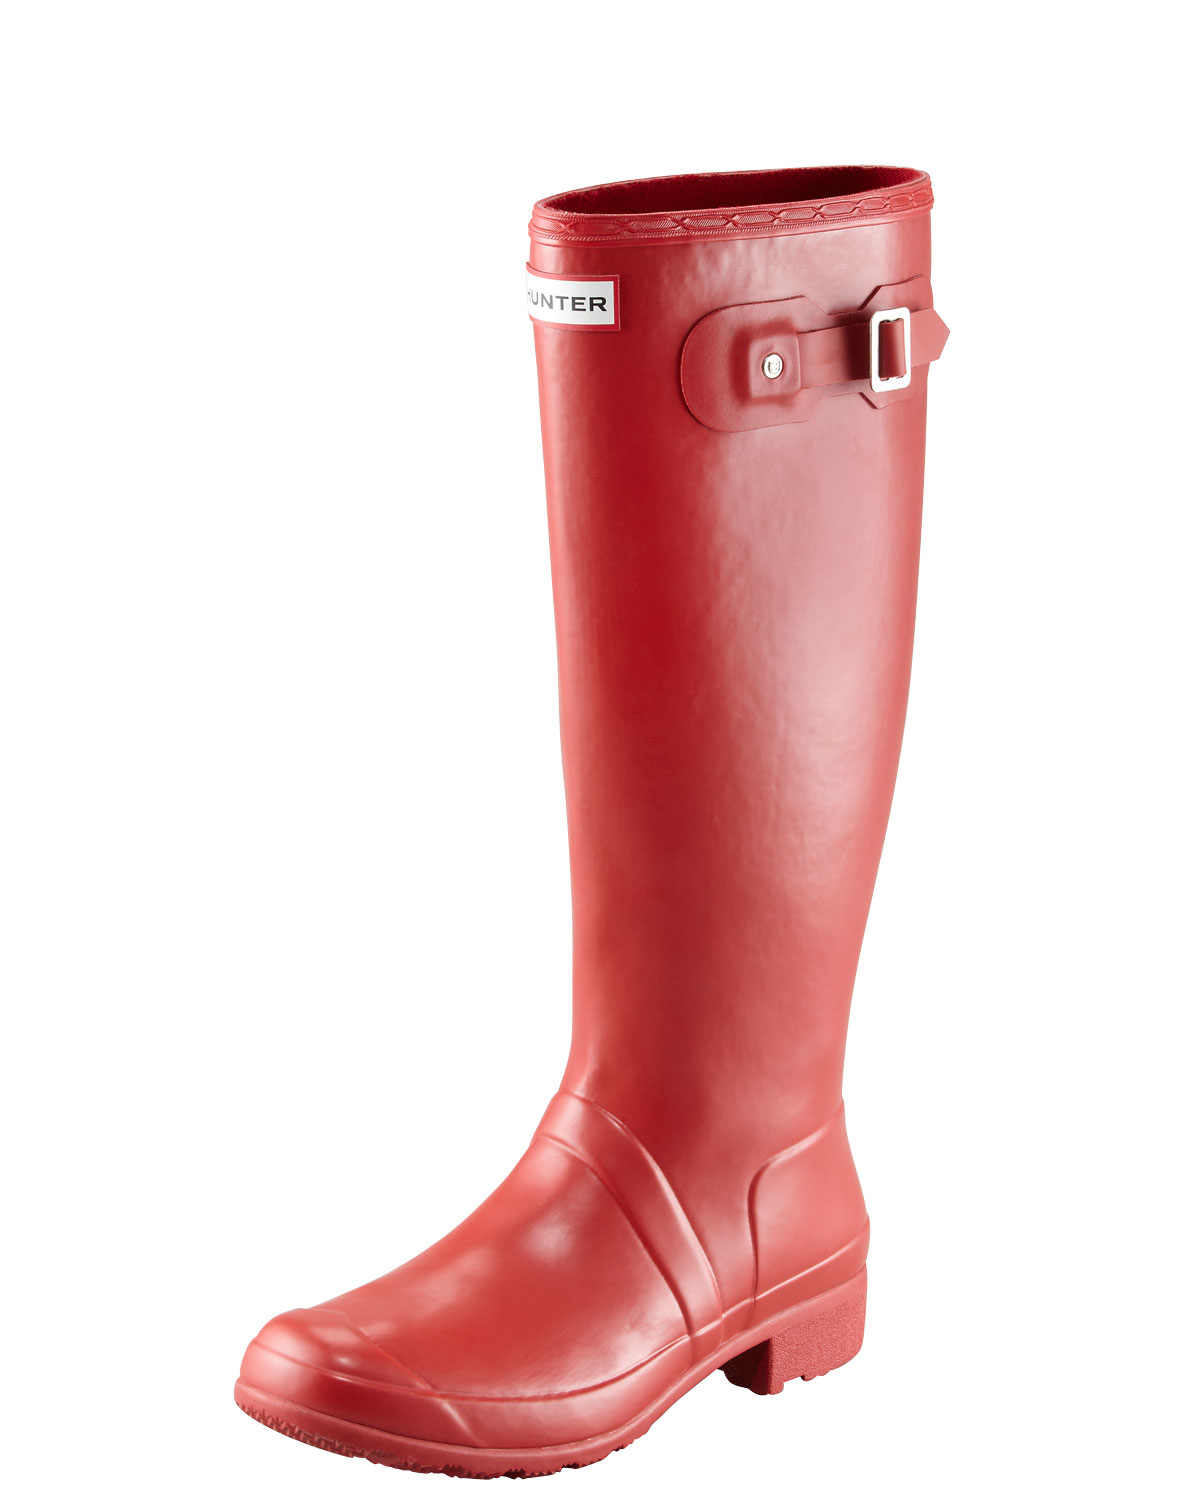 Original Tour Buckled Welly Boot, Red - Hunter Boot